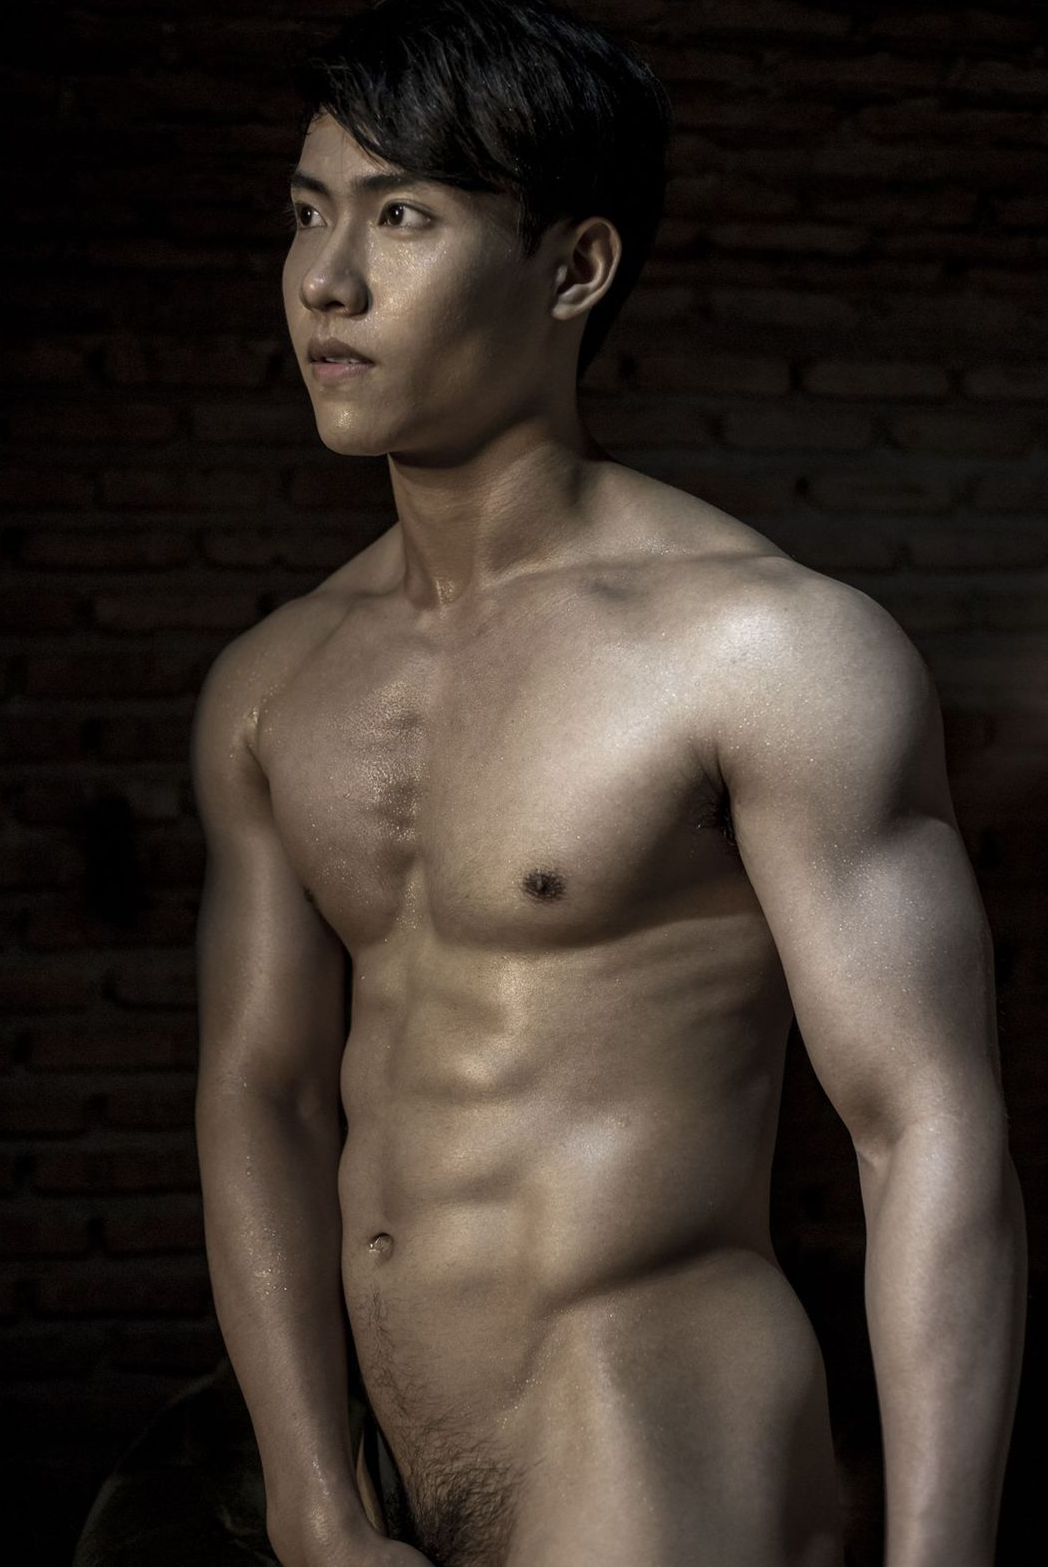 asian-gay-photo-model-06